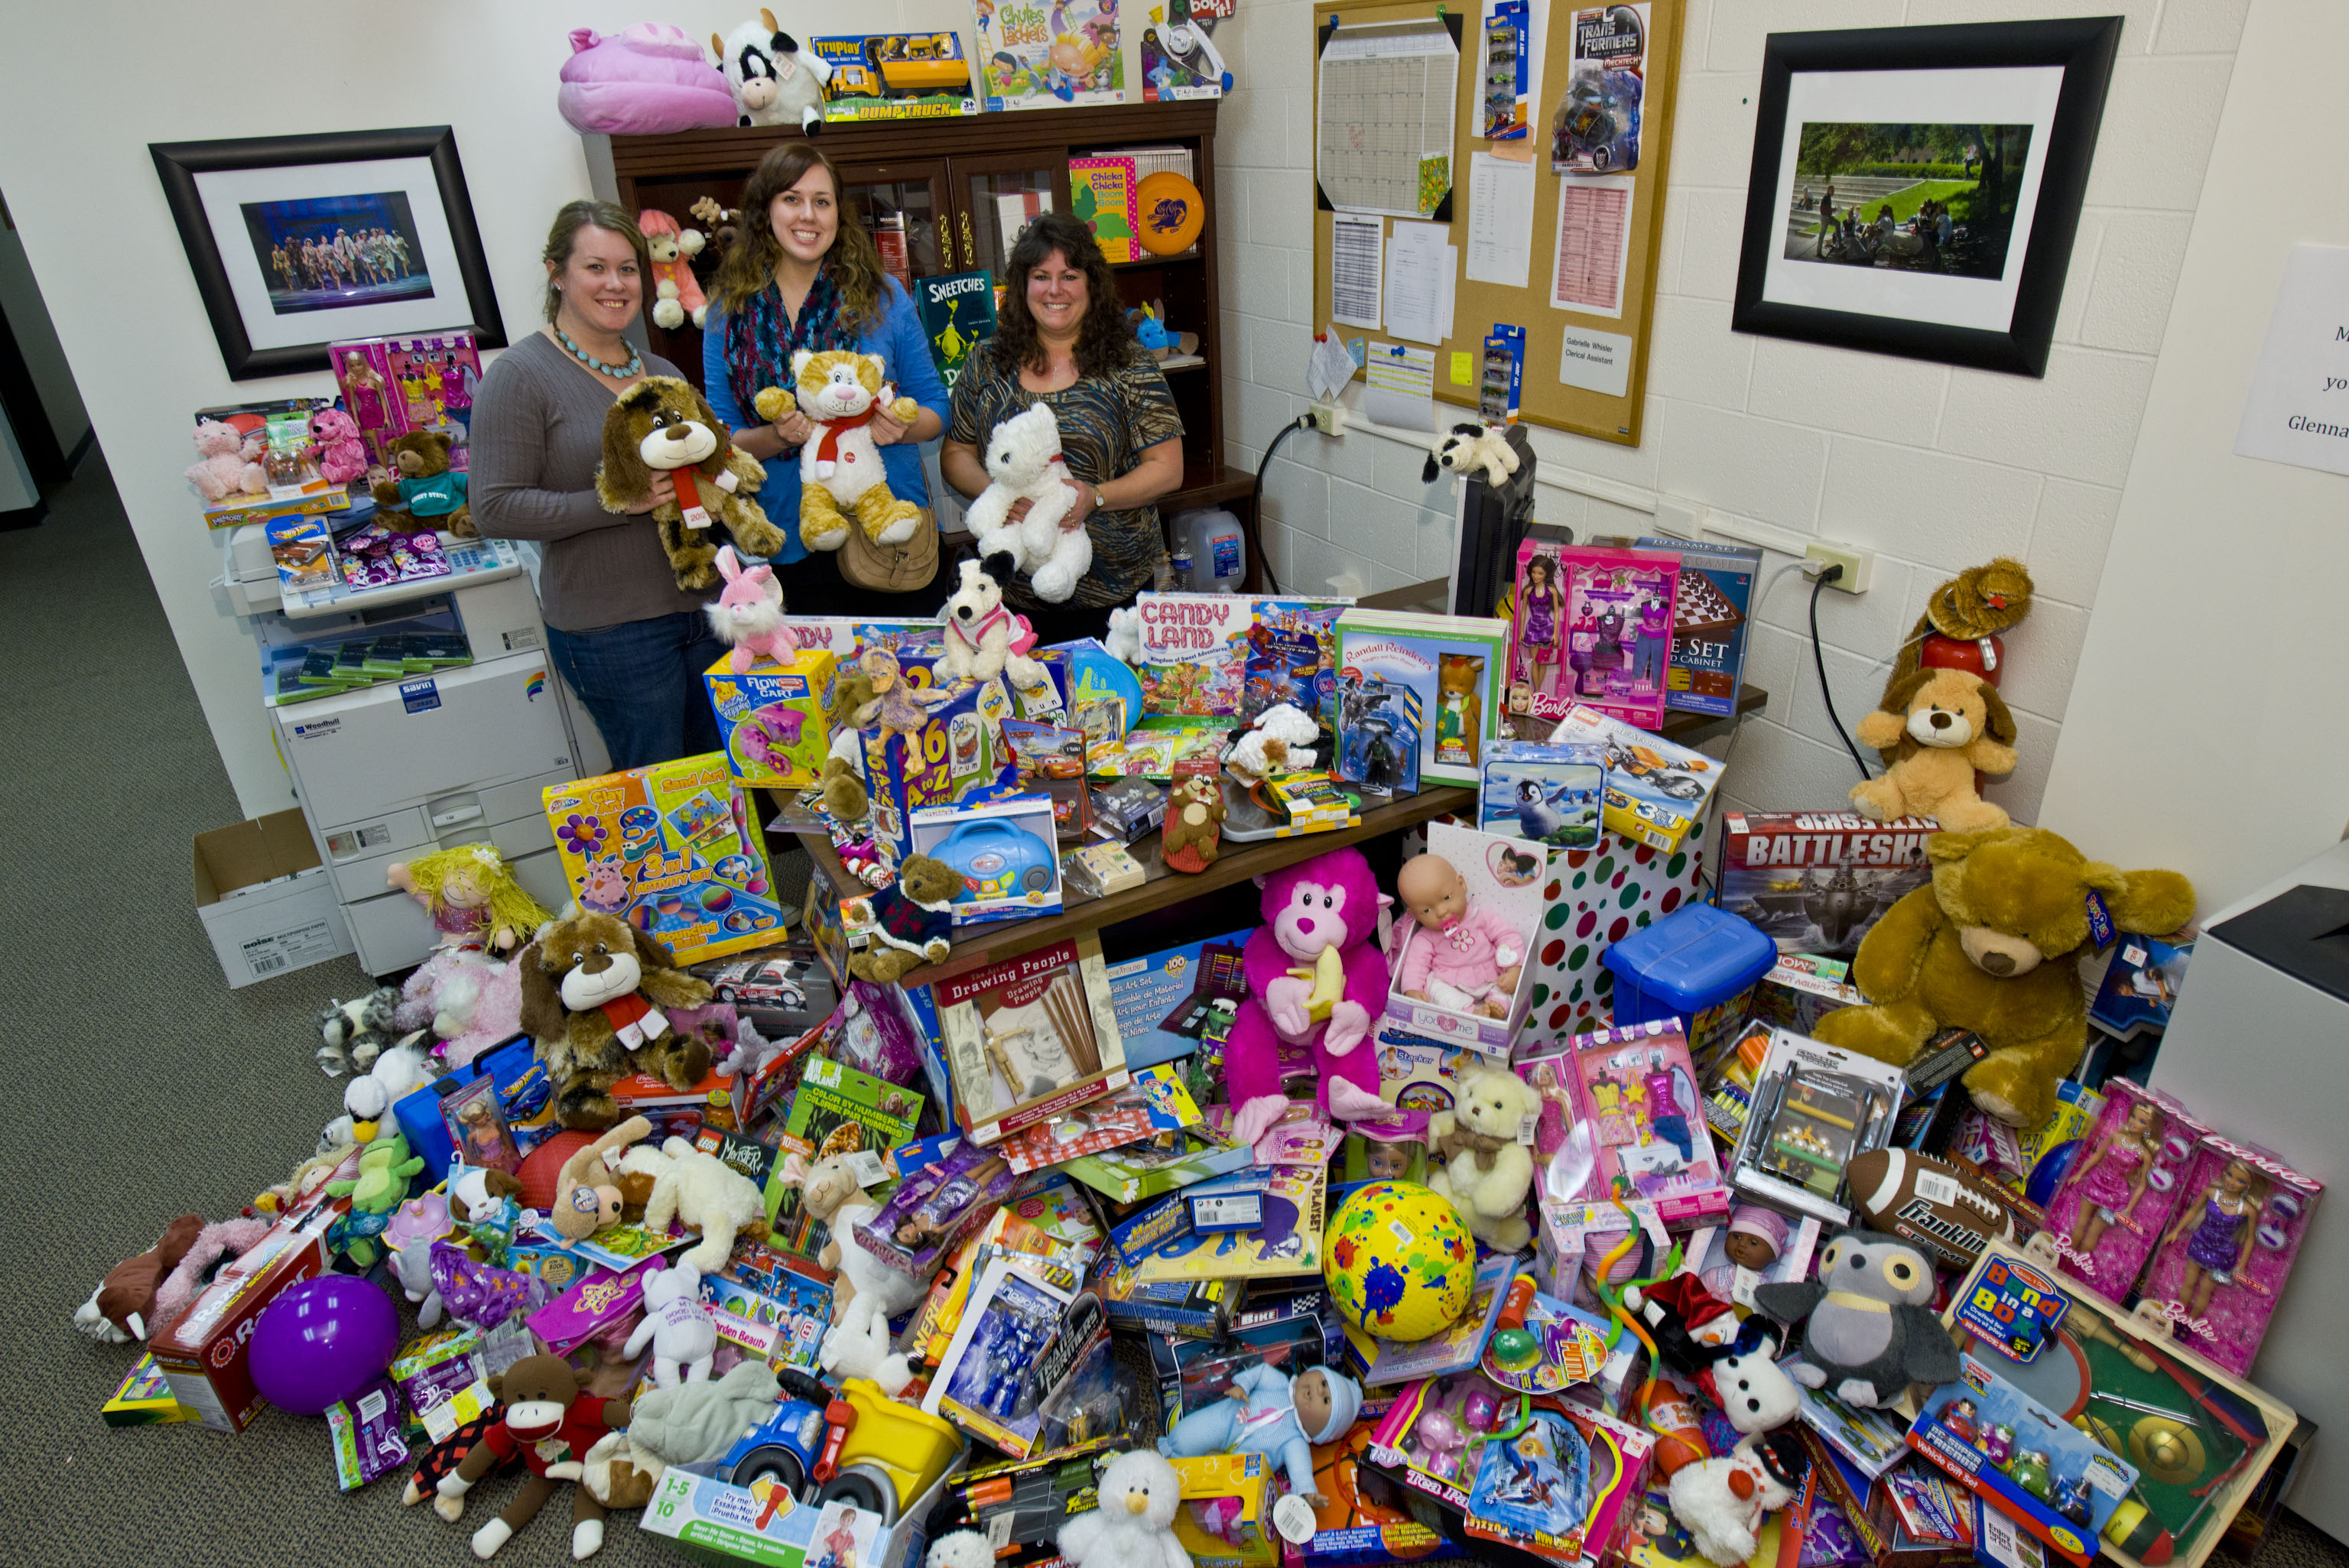 Cool Toys For Christmas 2013 : Wright state newsroom christmas for kids toy drive